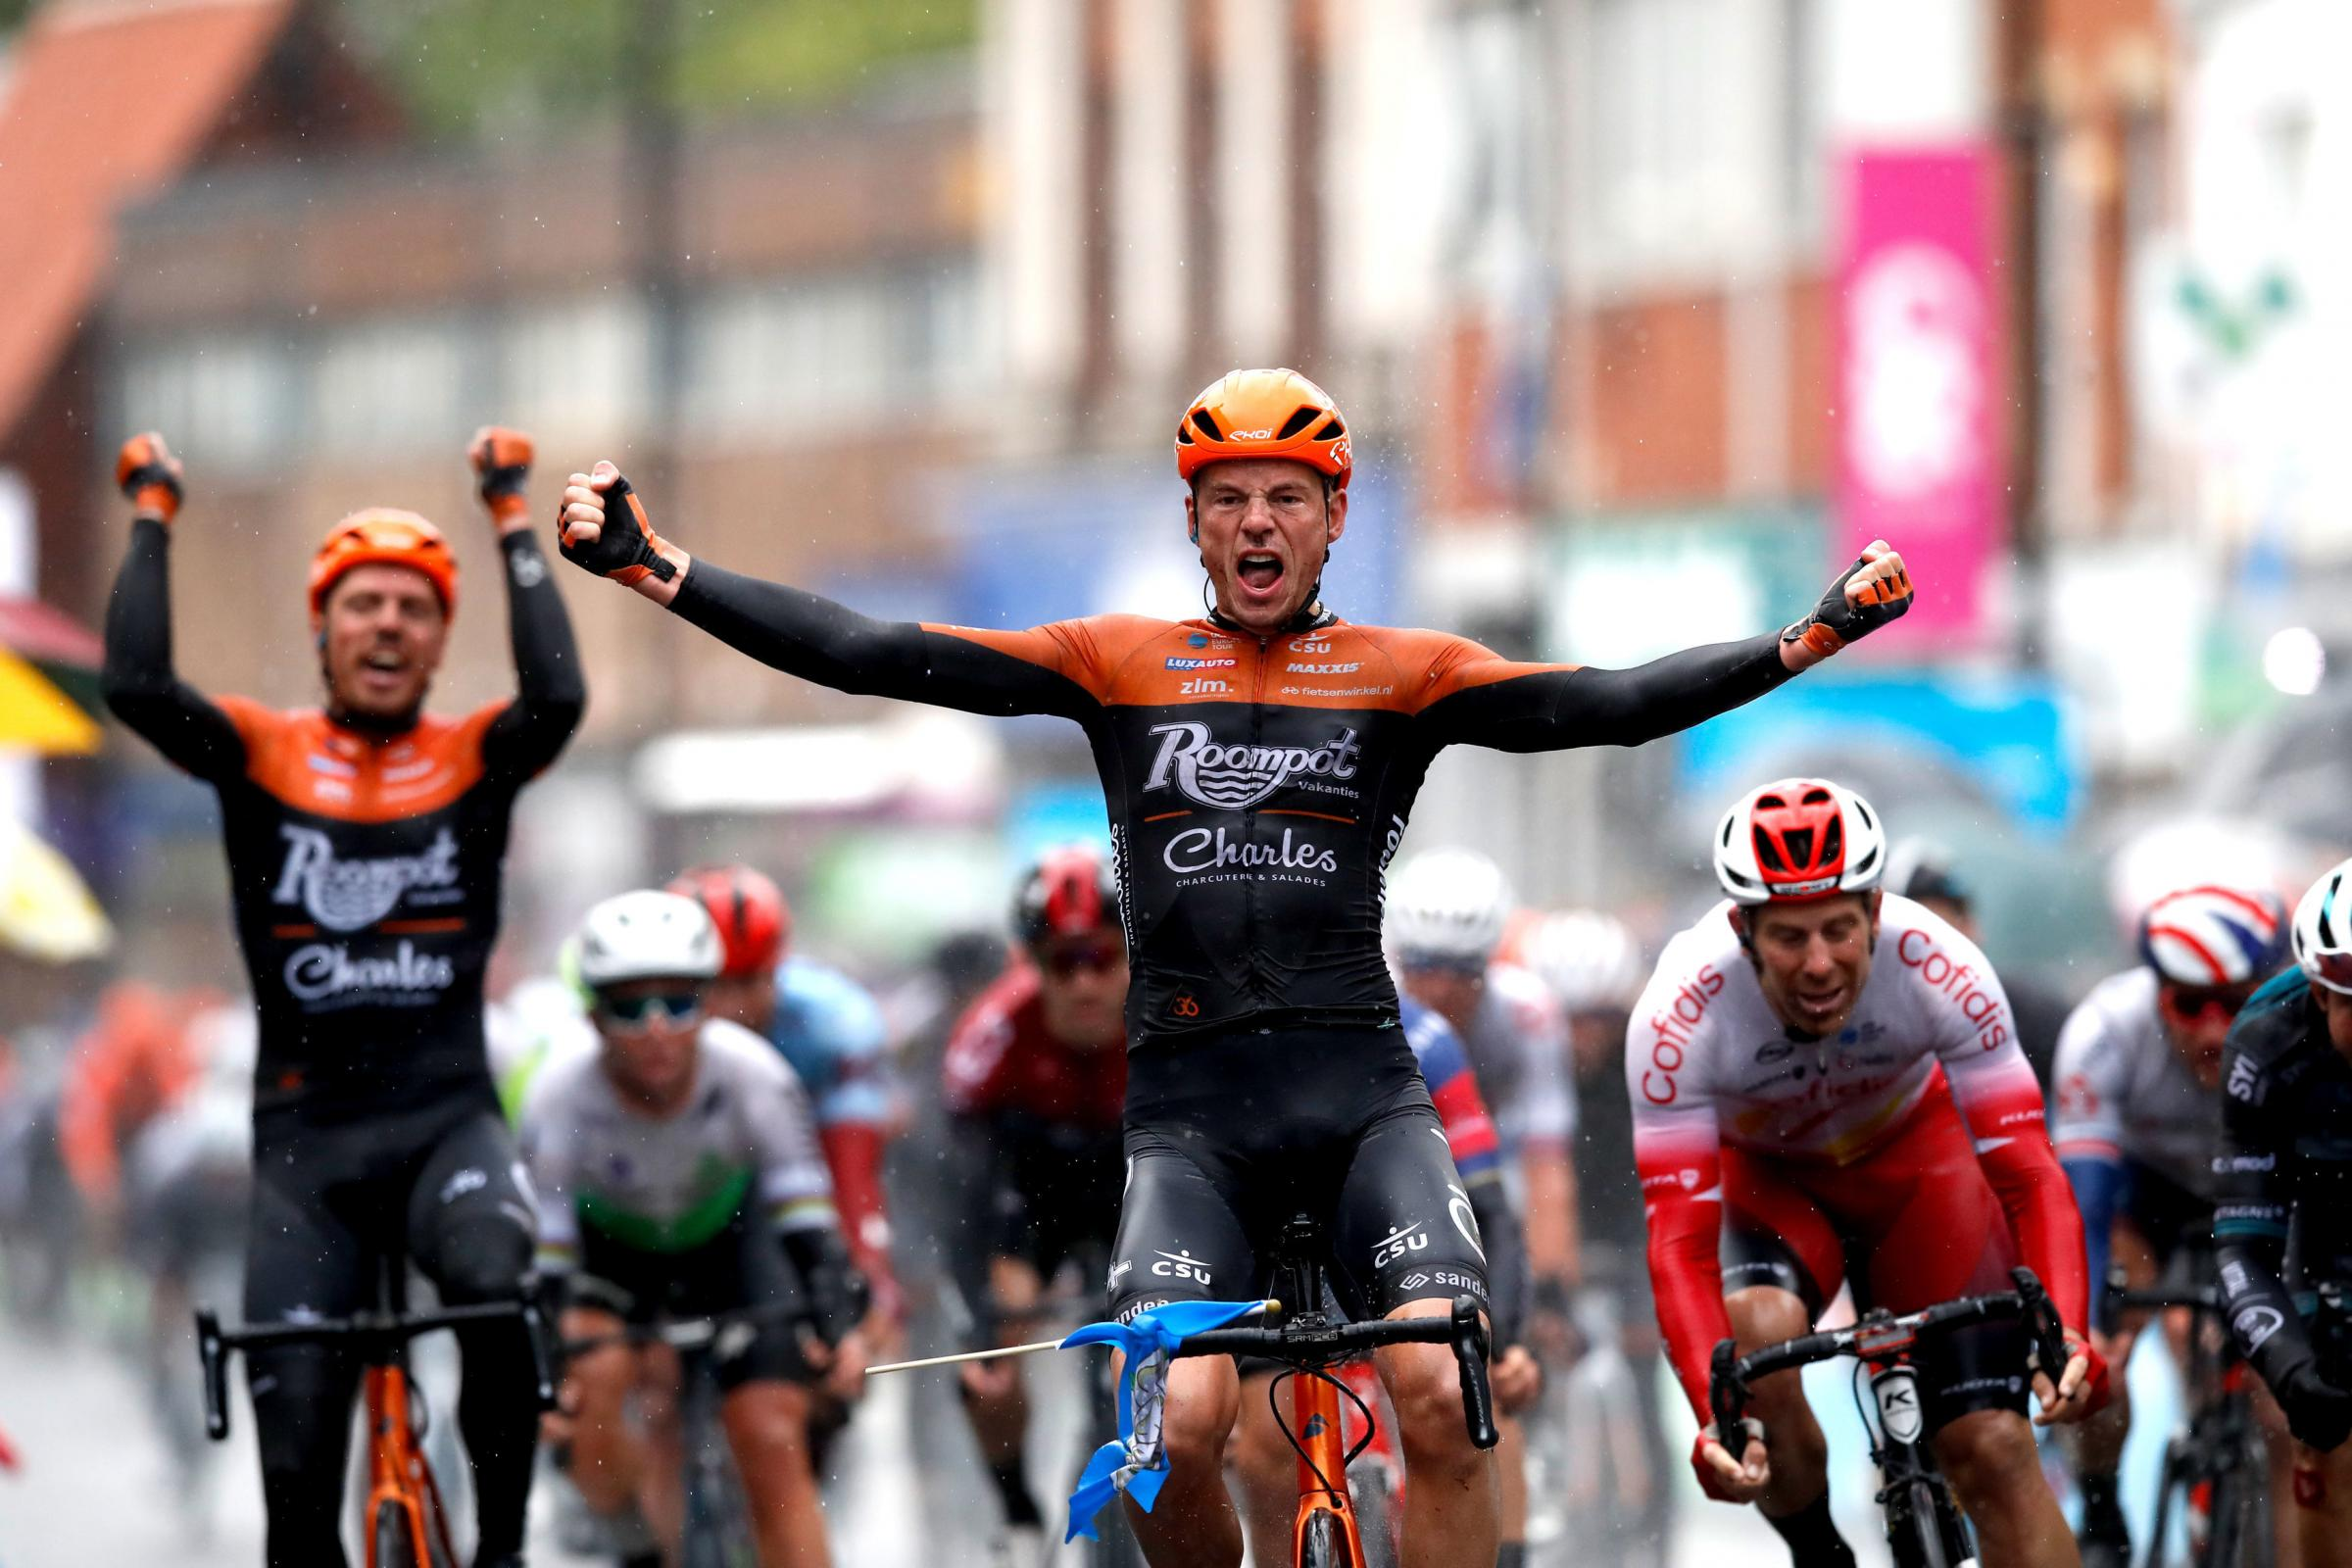 Team Roompot-Charles' Jesper Asselman (centre) celebrates winning stage one of the Tour de Yorkshire